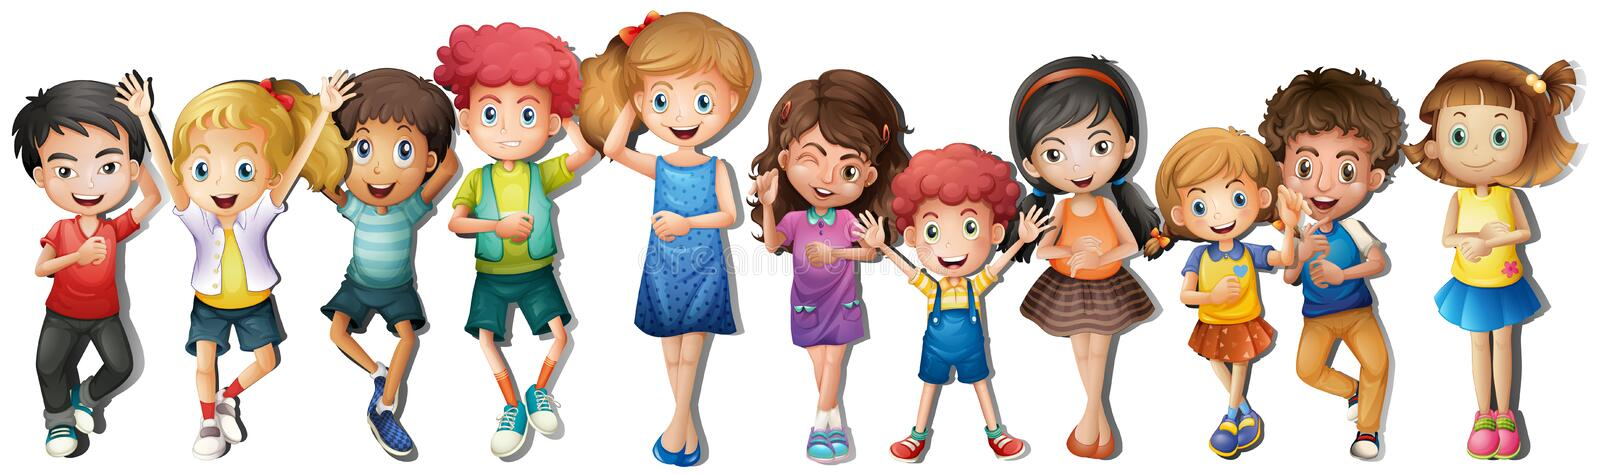 Many children with happy face royalty free illustration